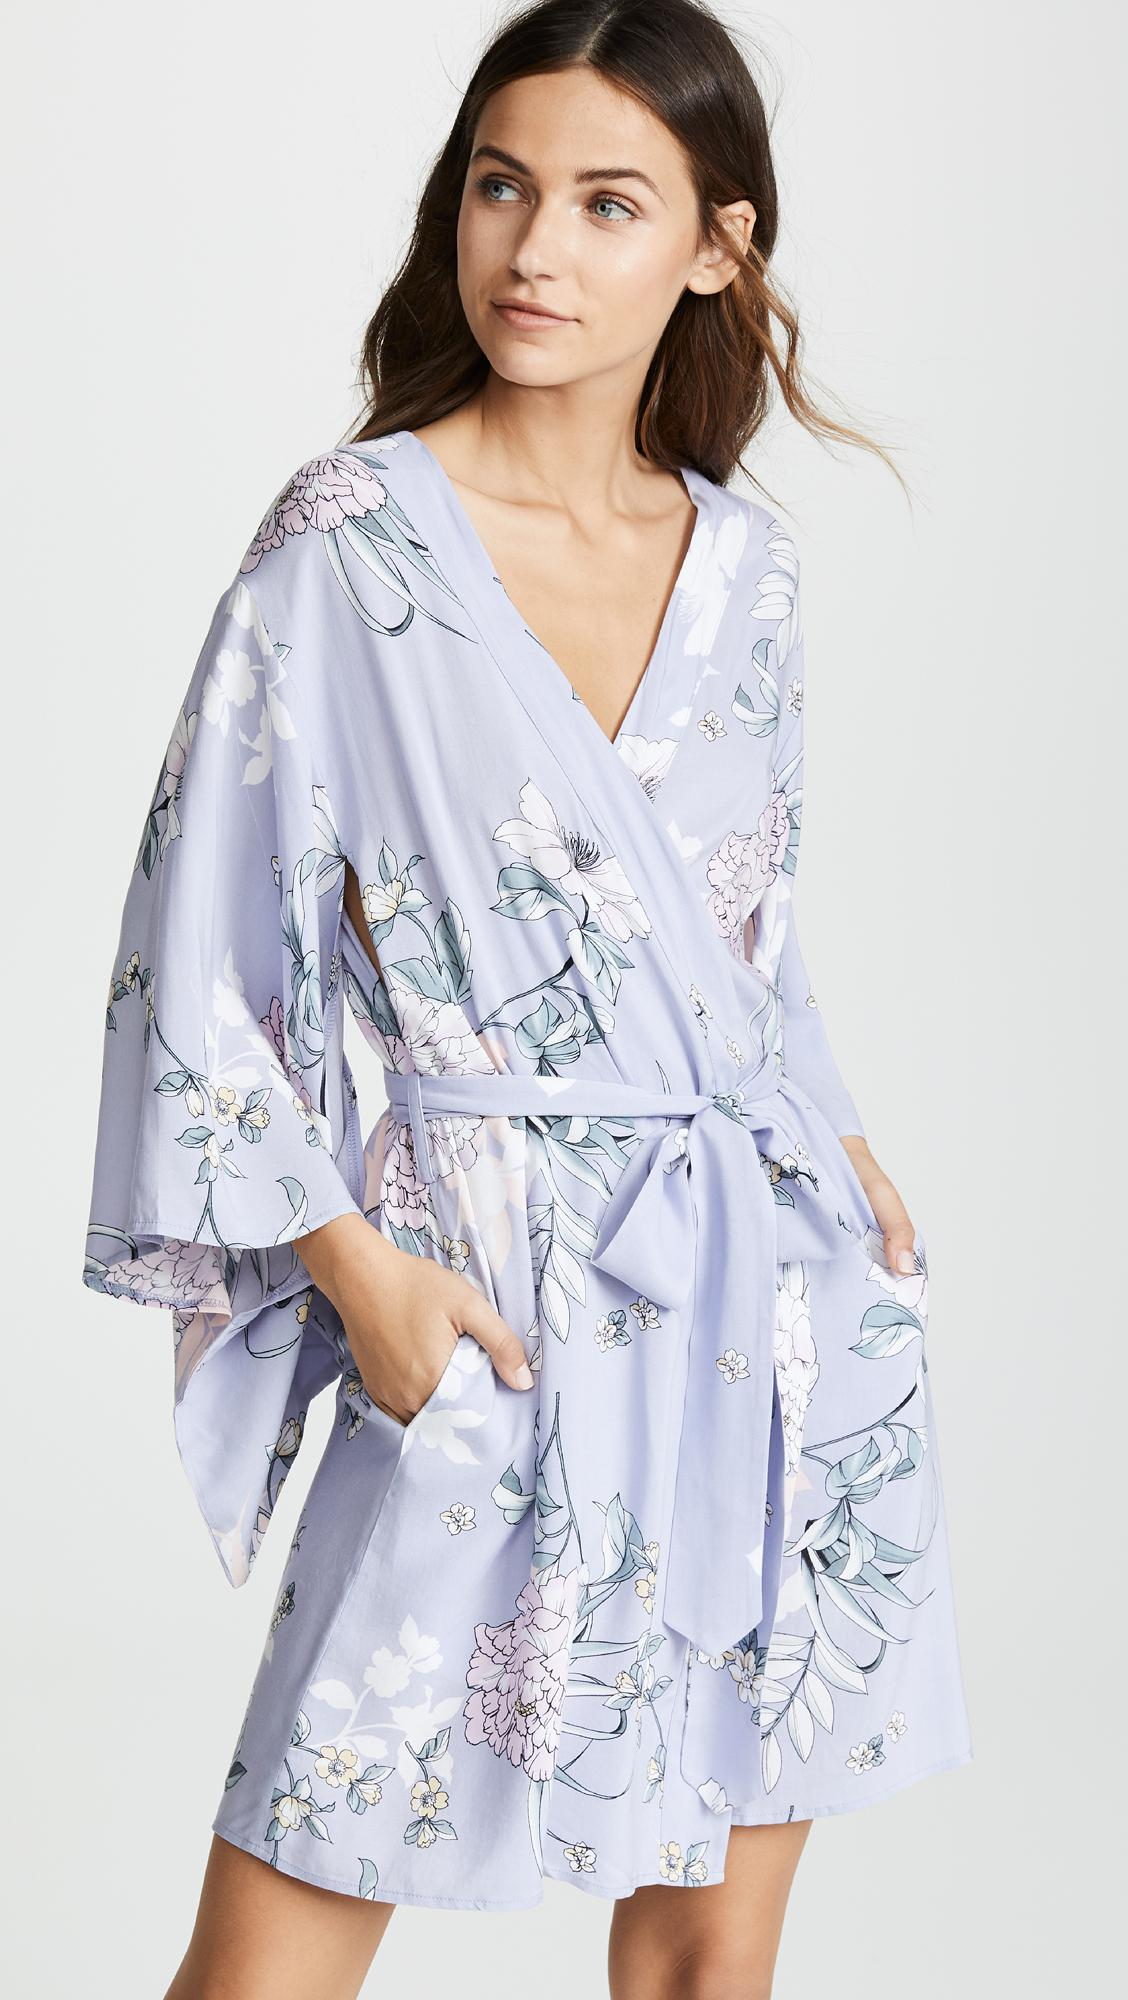 a69677ebc1 Lyst - Yumi Kim Utopia Robe in Blue